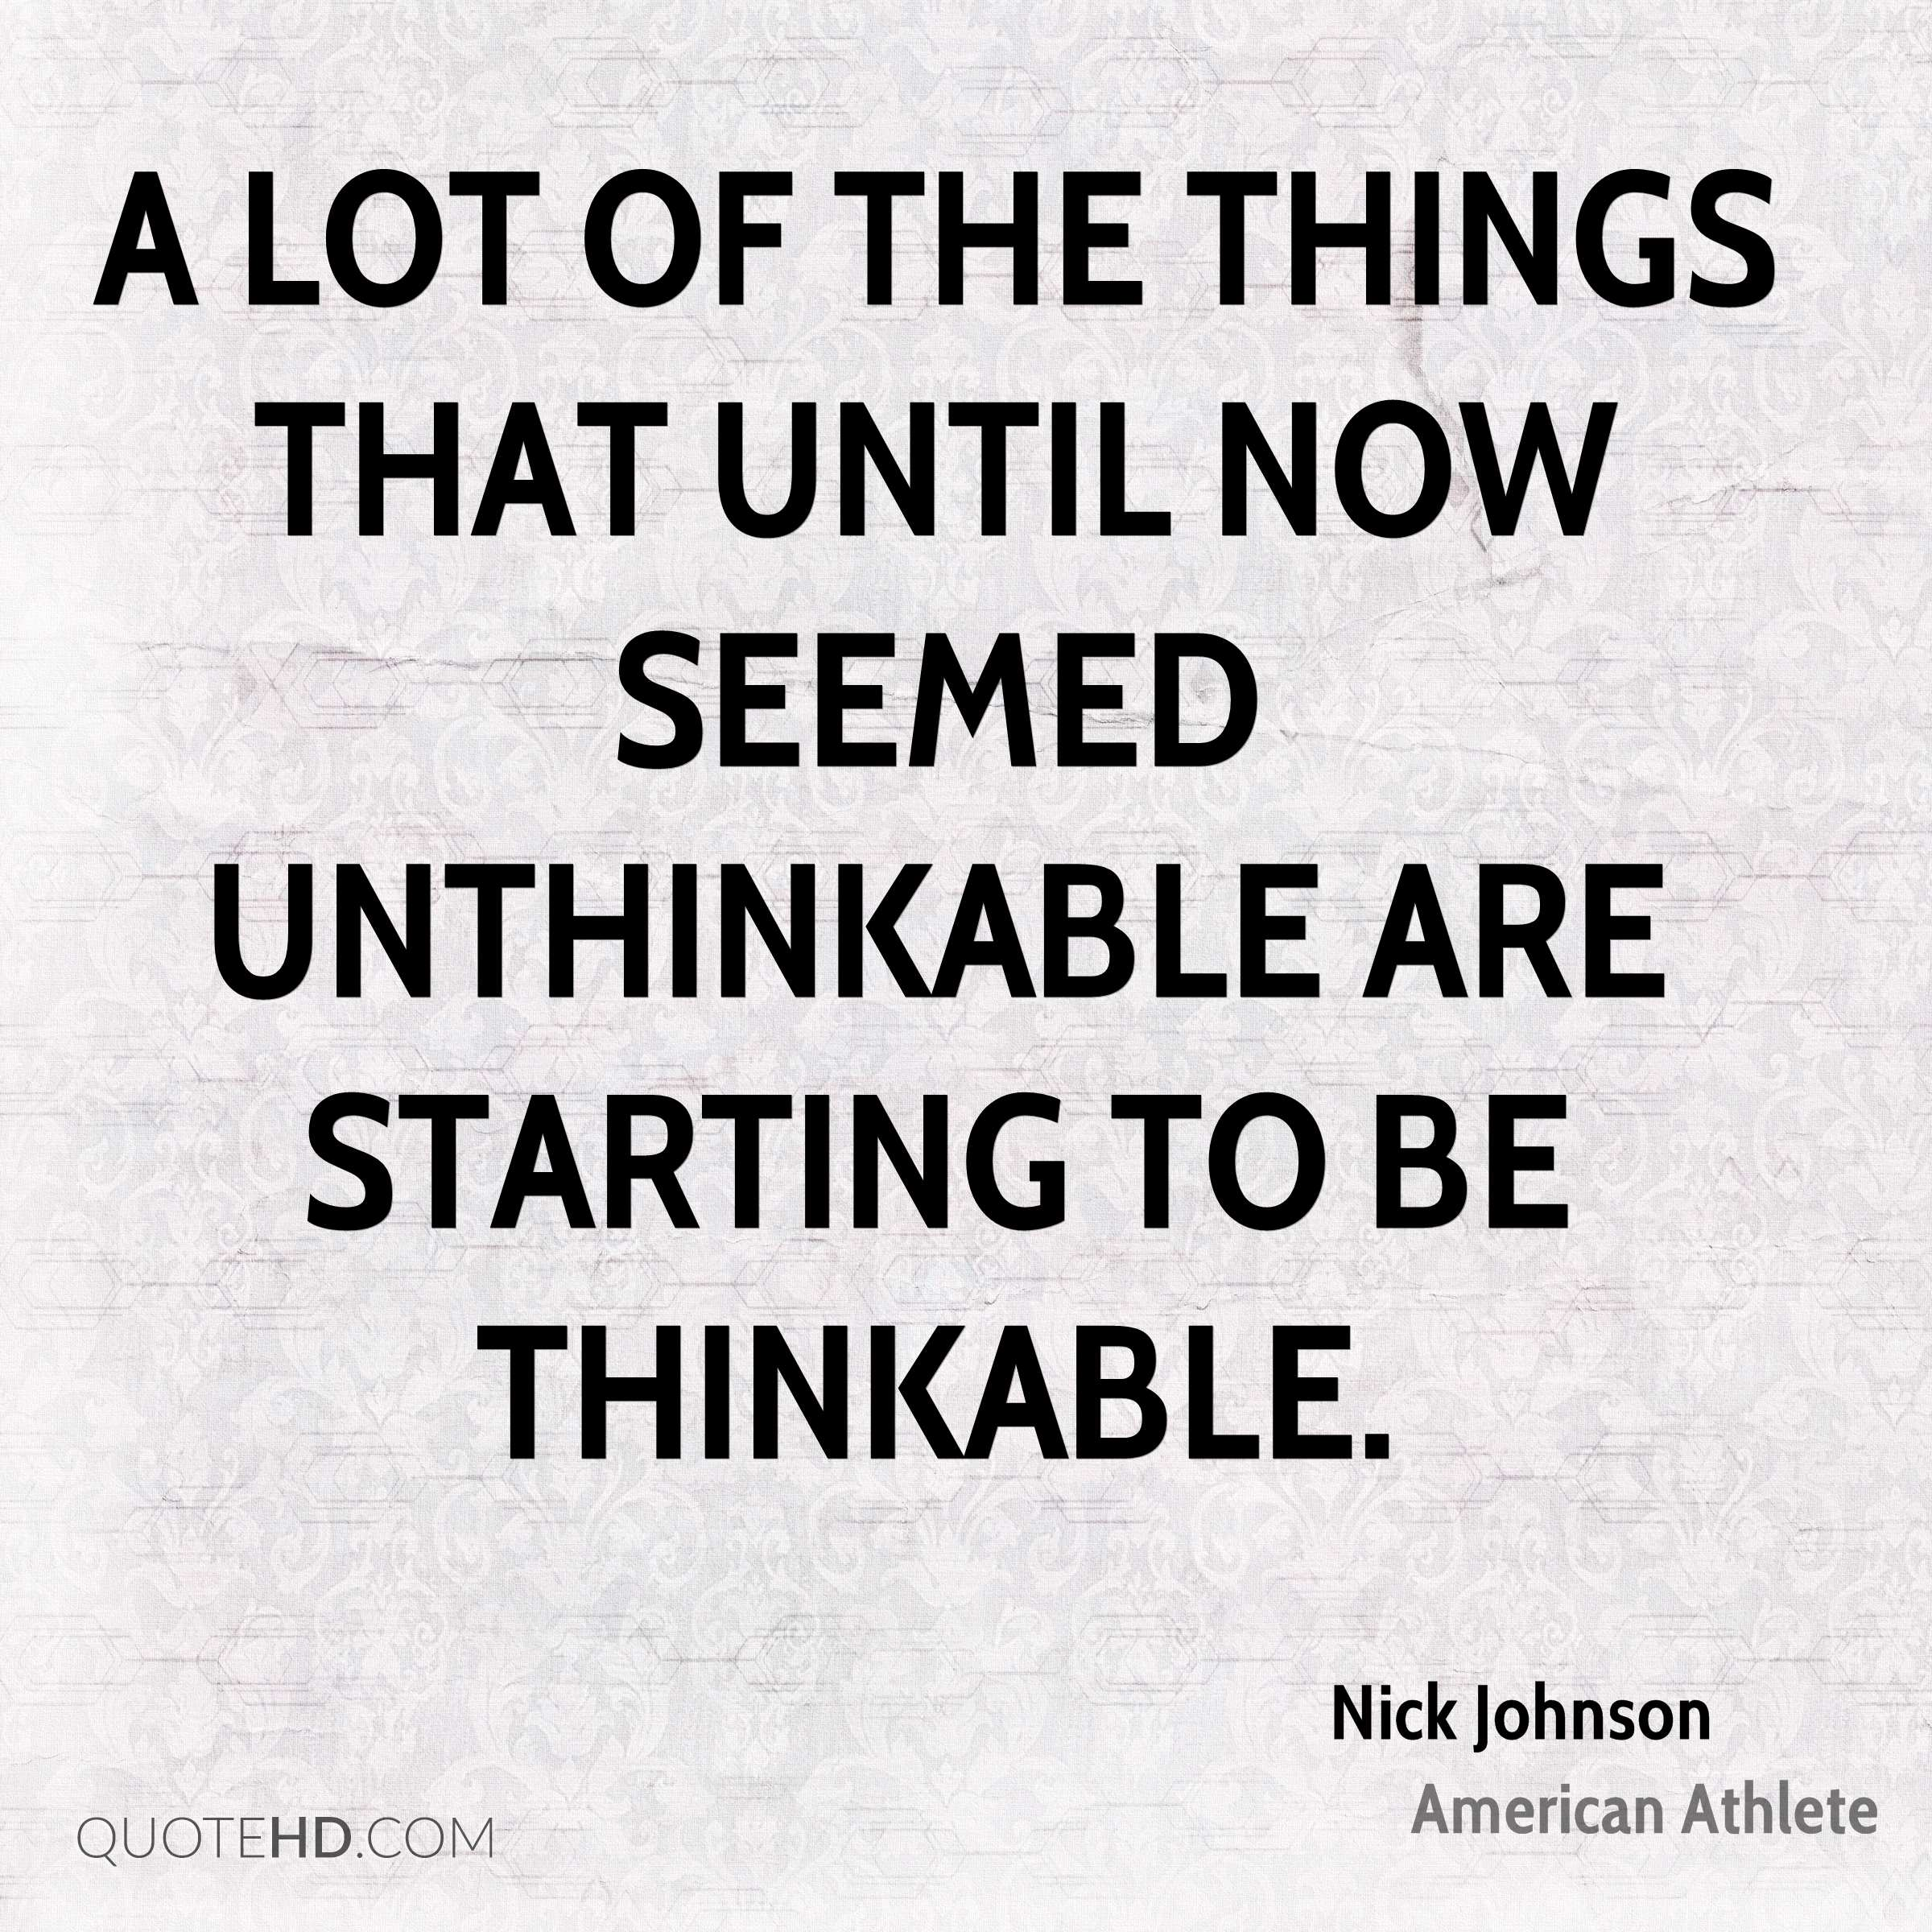 A lot of the things that until now seemed unthinkable are starting to be thinkable.